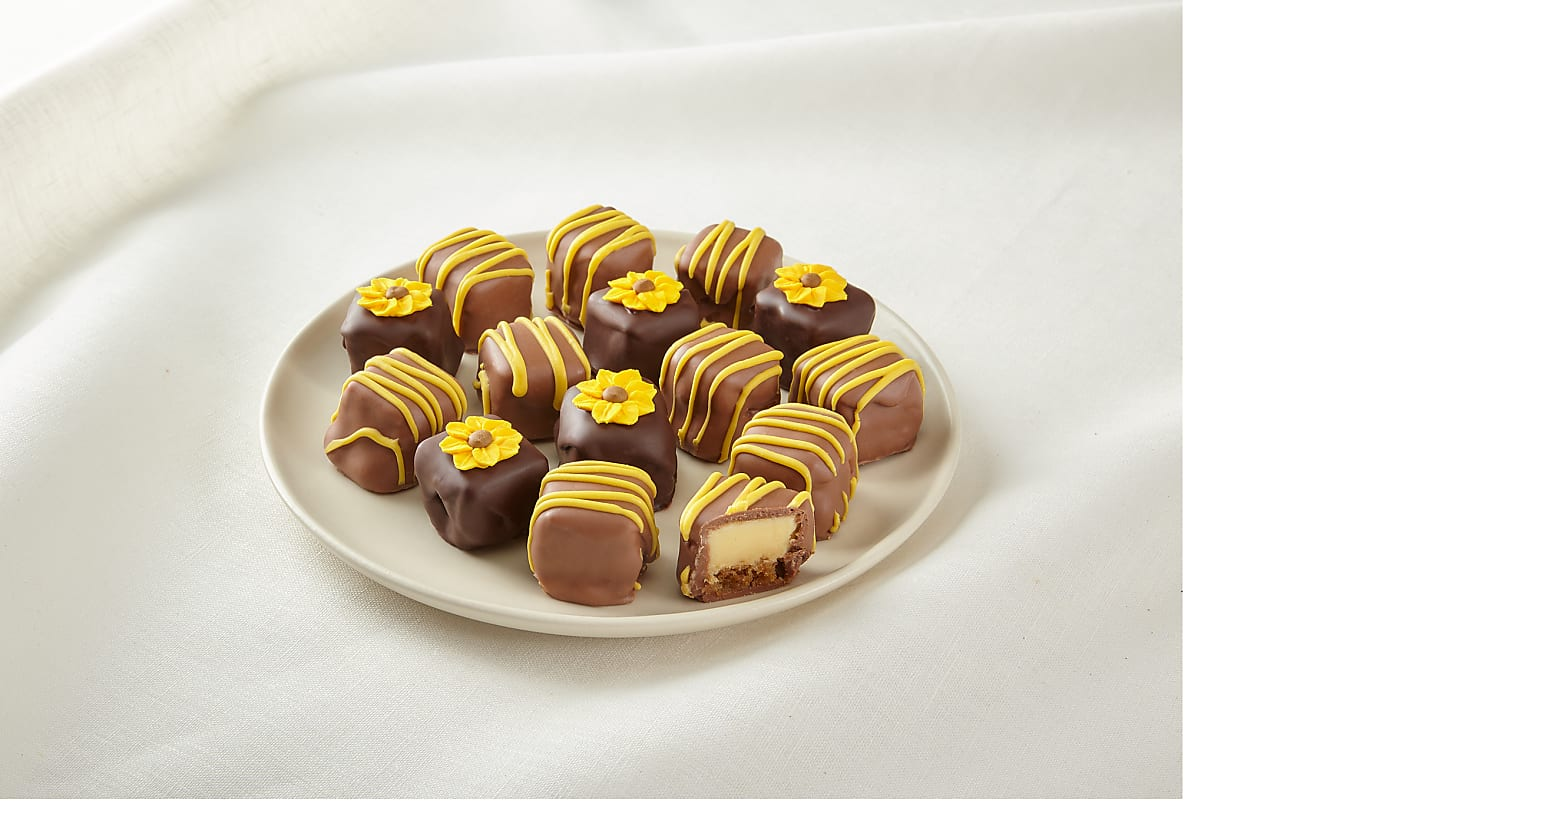 Sunny Days Belgian Chocolate-Covered Cheesecake Bites - Image 1 Of 2